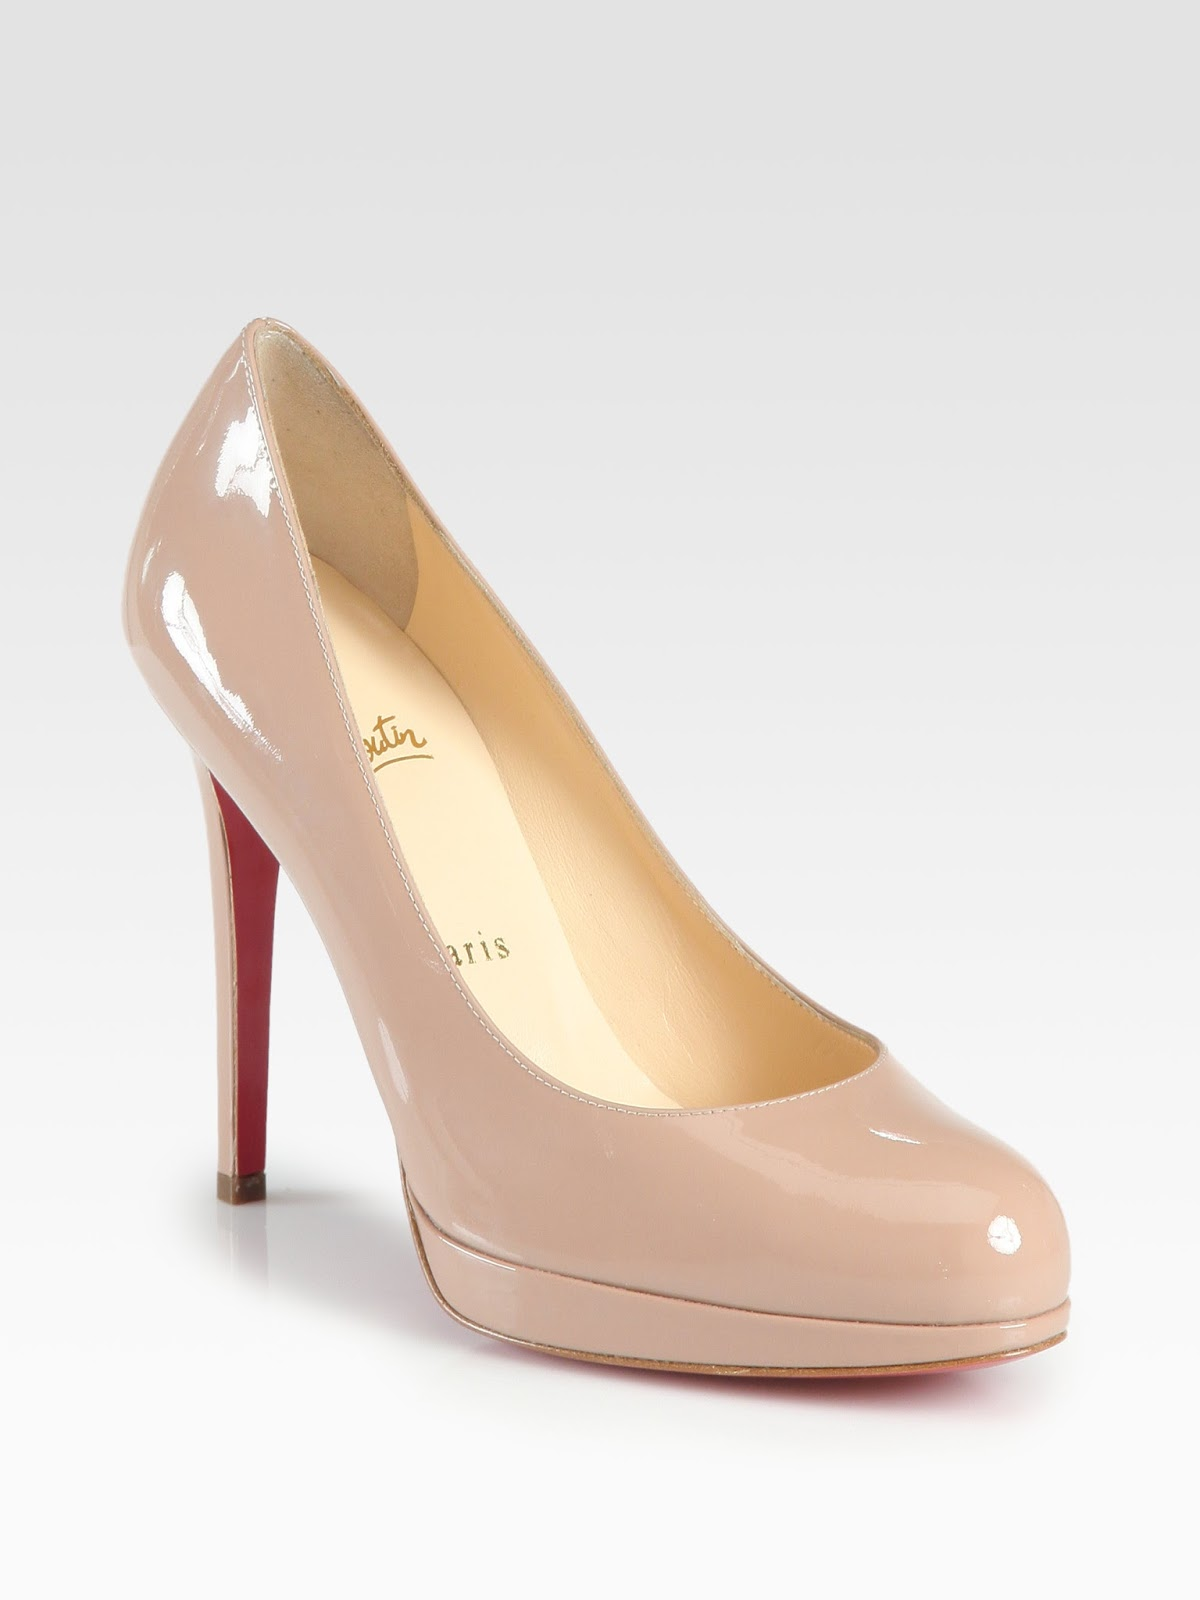 CHRISTIAN LOUBOUTIN NEW SIMPLE PUMP 120MM NUDE PATENT - Reed ...